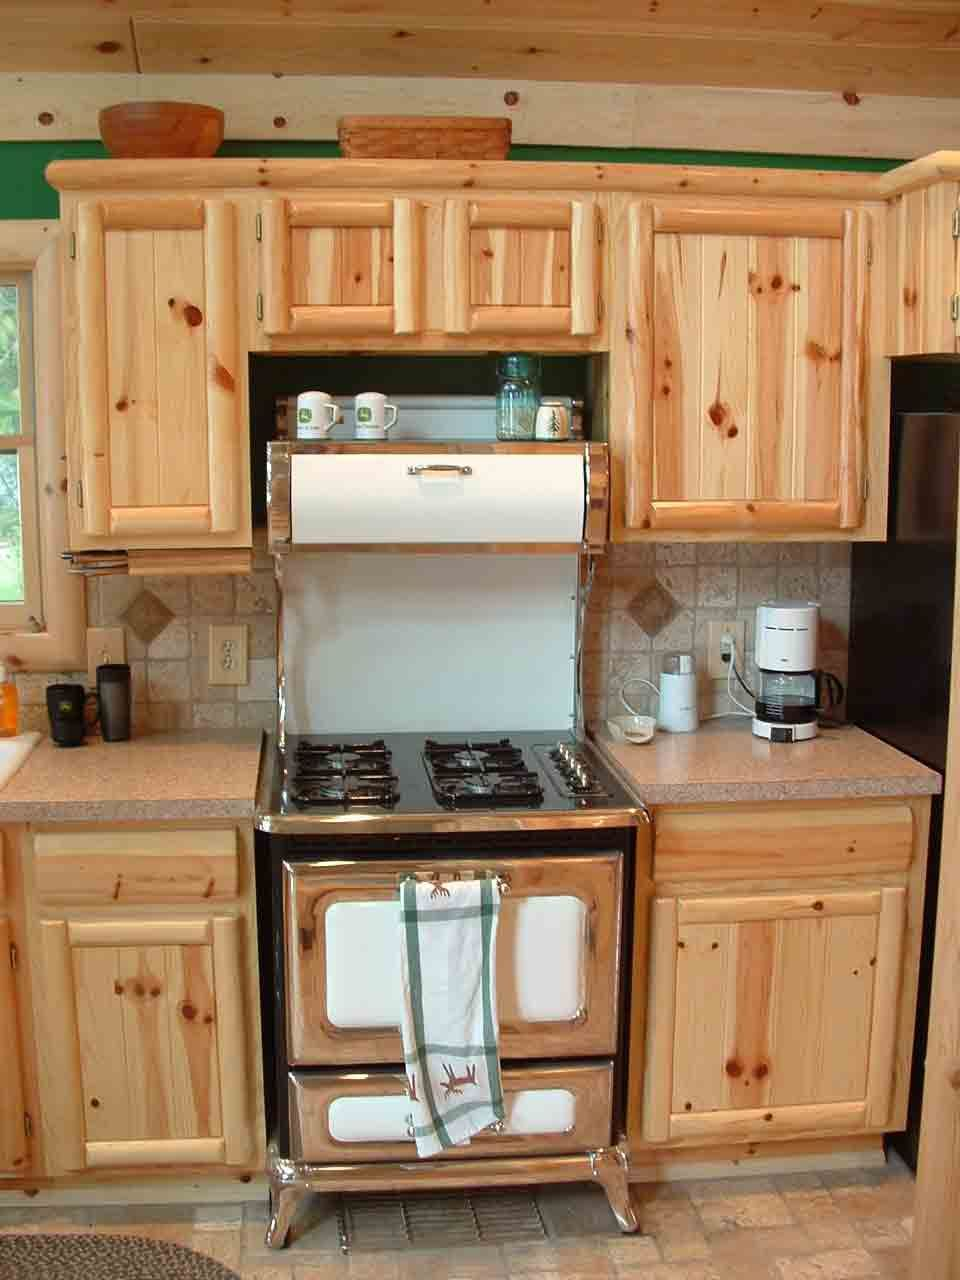 Knotty Pine Kitchen Cabinets A Premium Traditional Choice Designalls In 2020 Unfinished Kitchen Cabinets Wood Kitchen Cabinets Kitchen Cabinets For Sale